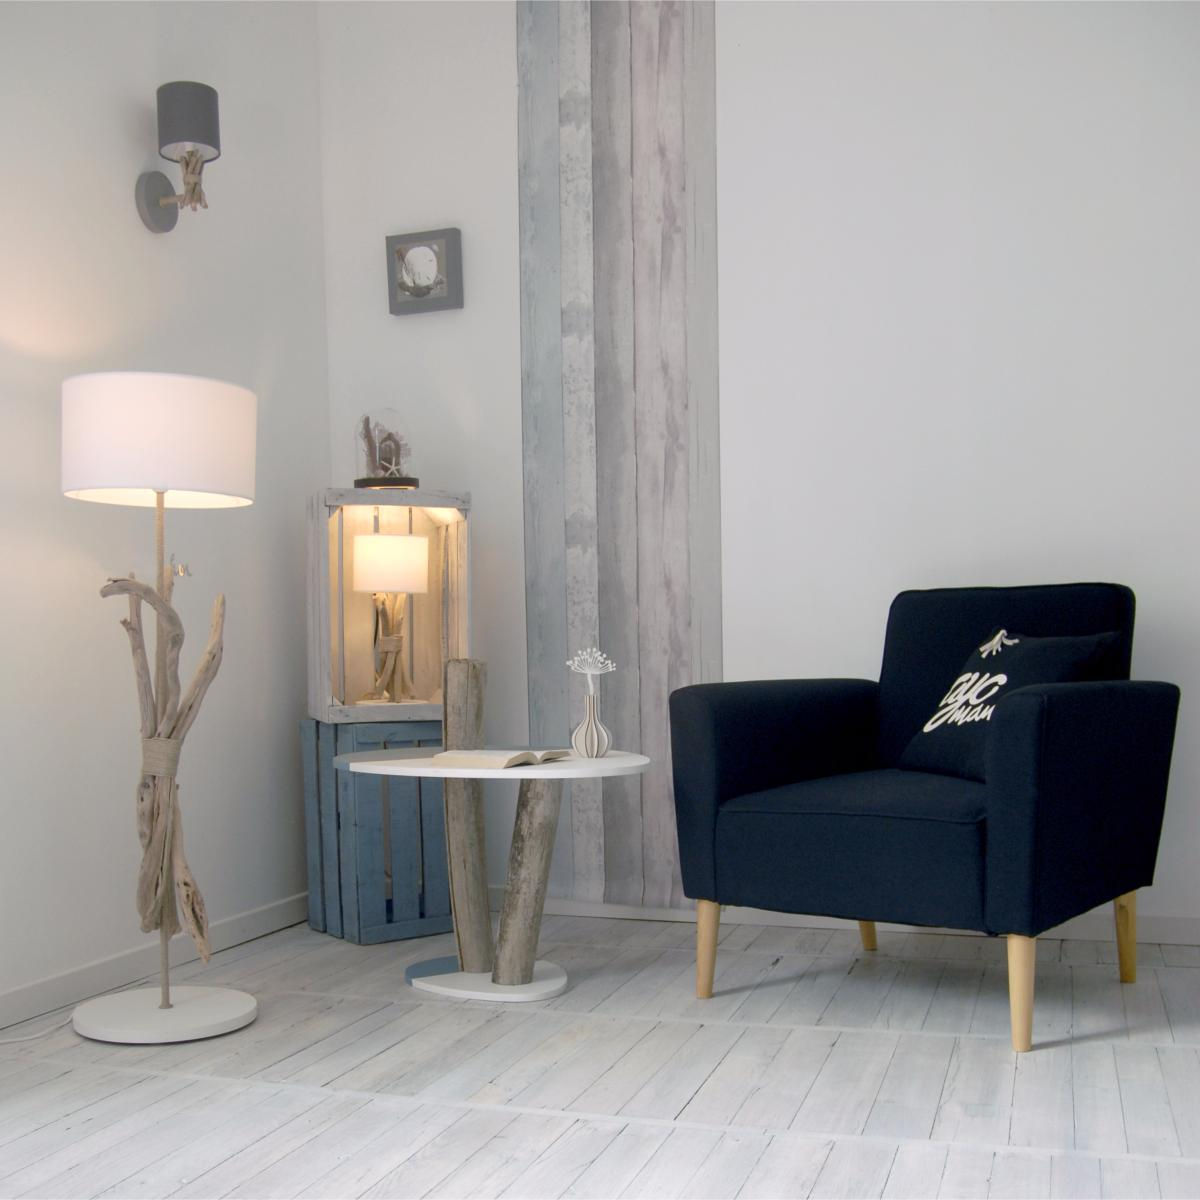 lampe applique murale bord de mer bois et galets fabriqu e la main en france blanc. Black Bedroom Furniture Sets. Home Design Ideas